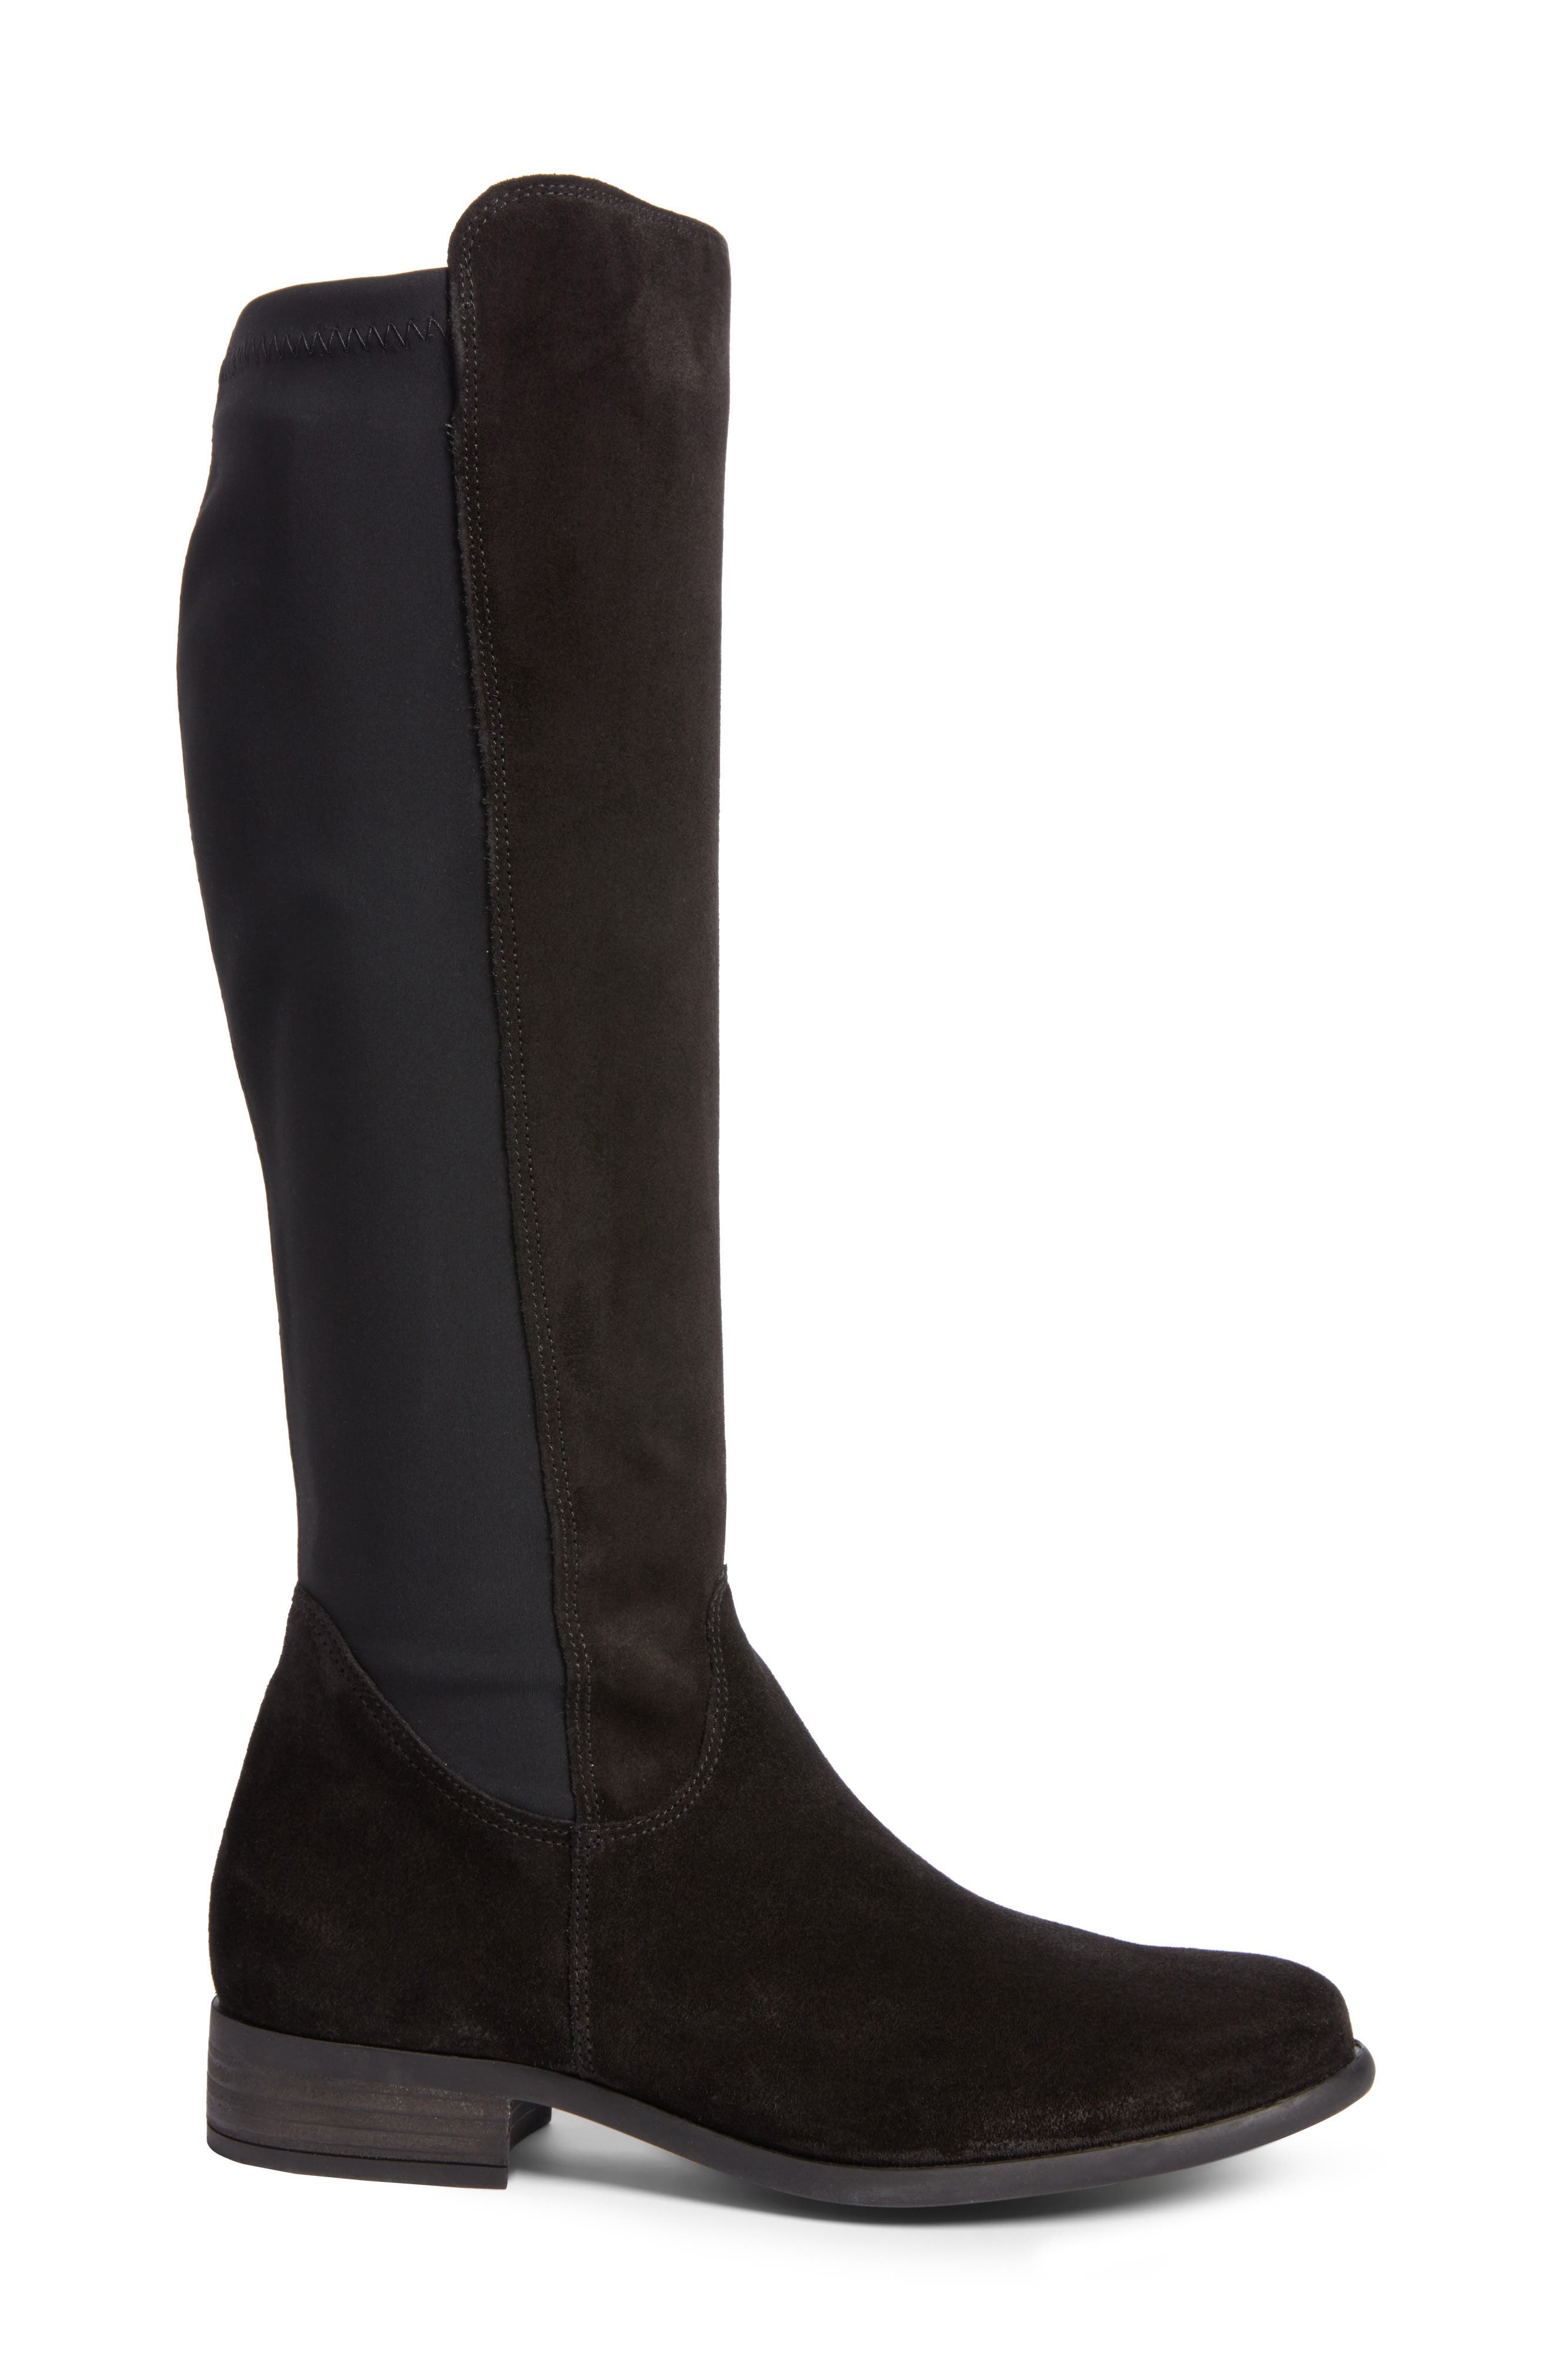 Nola Tall Water Resistant Boot,                             Alternate thumbnail 3, color,                             009